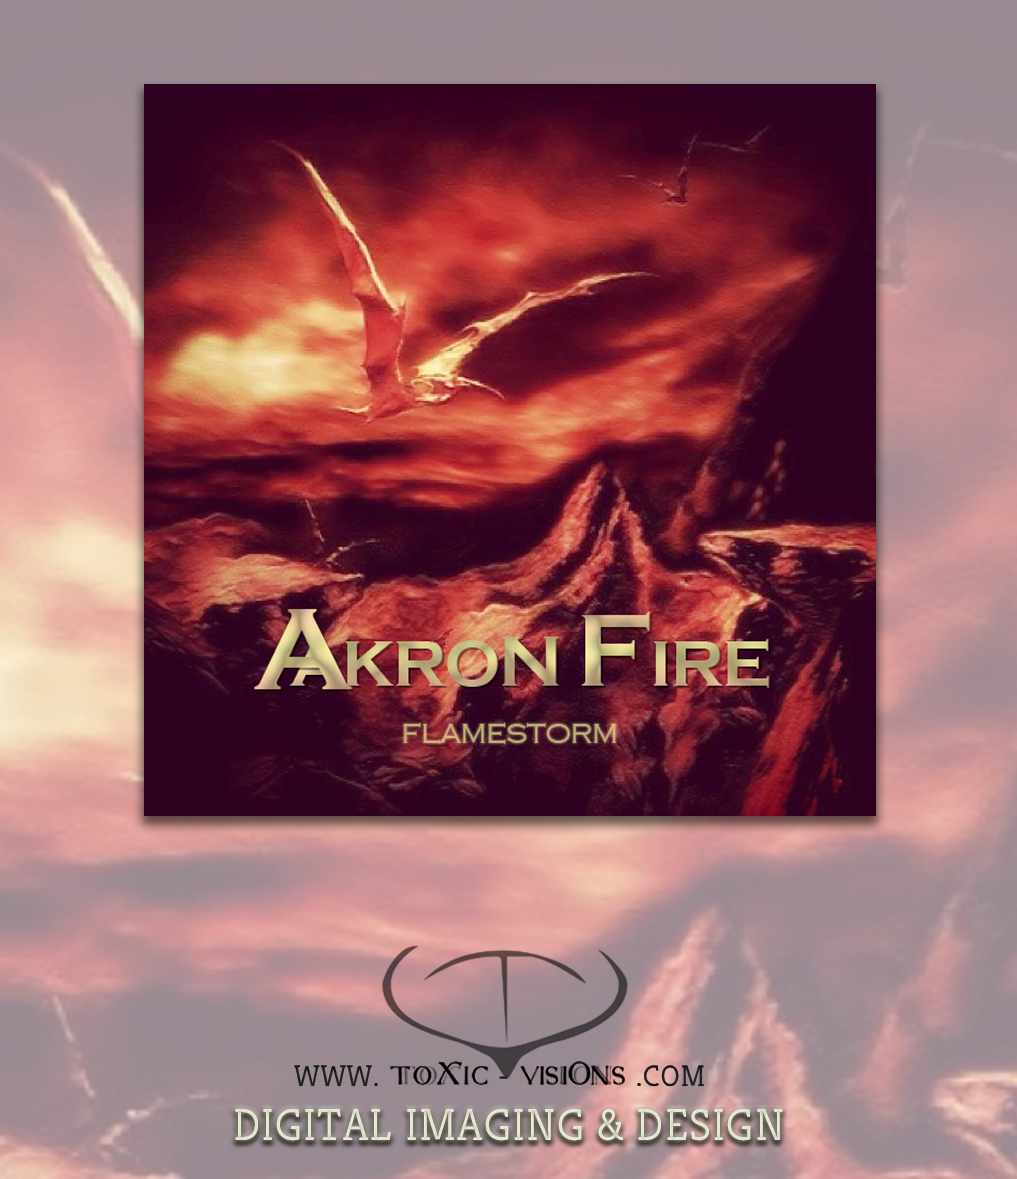 Akron Fire - Cd Cover Artwork